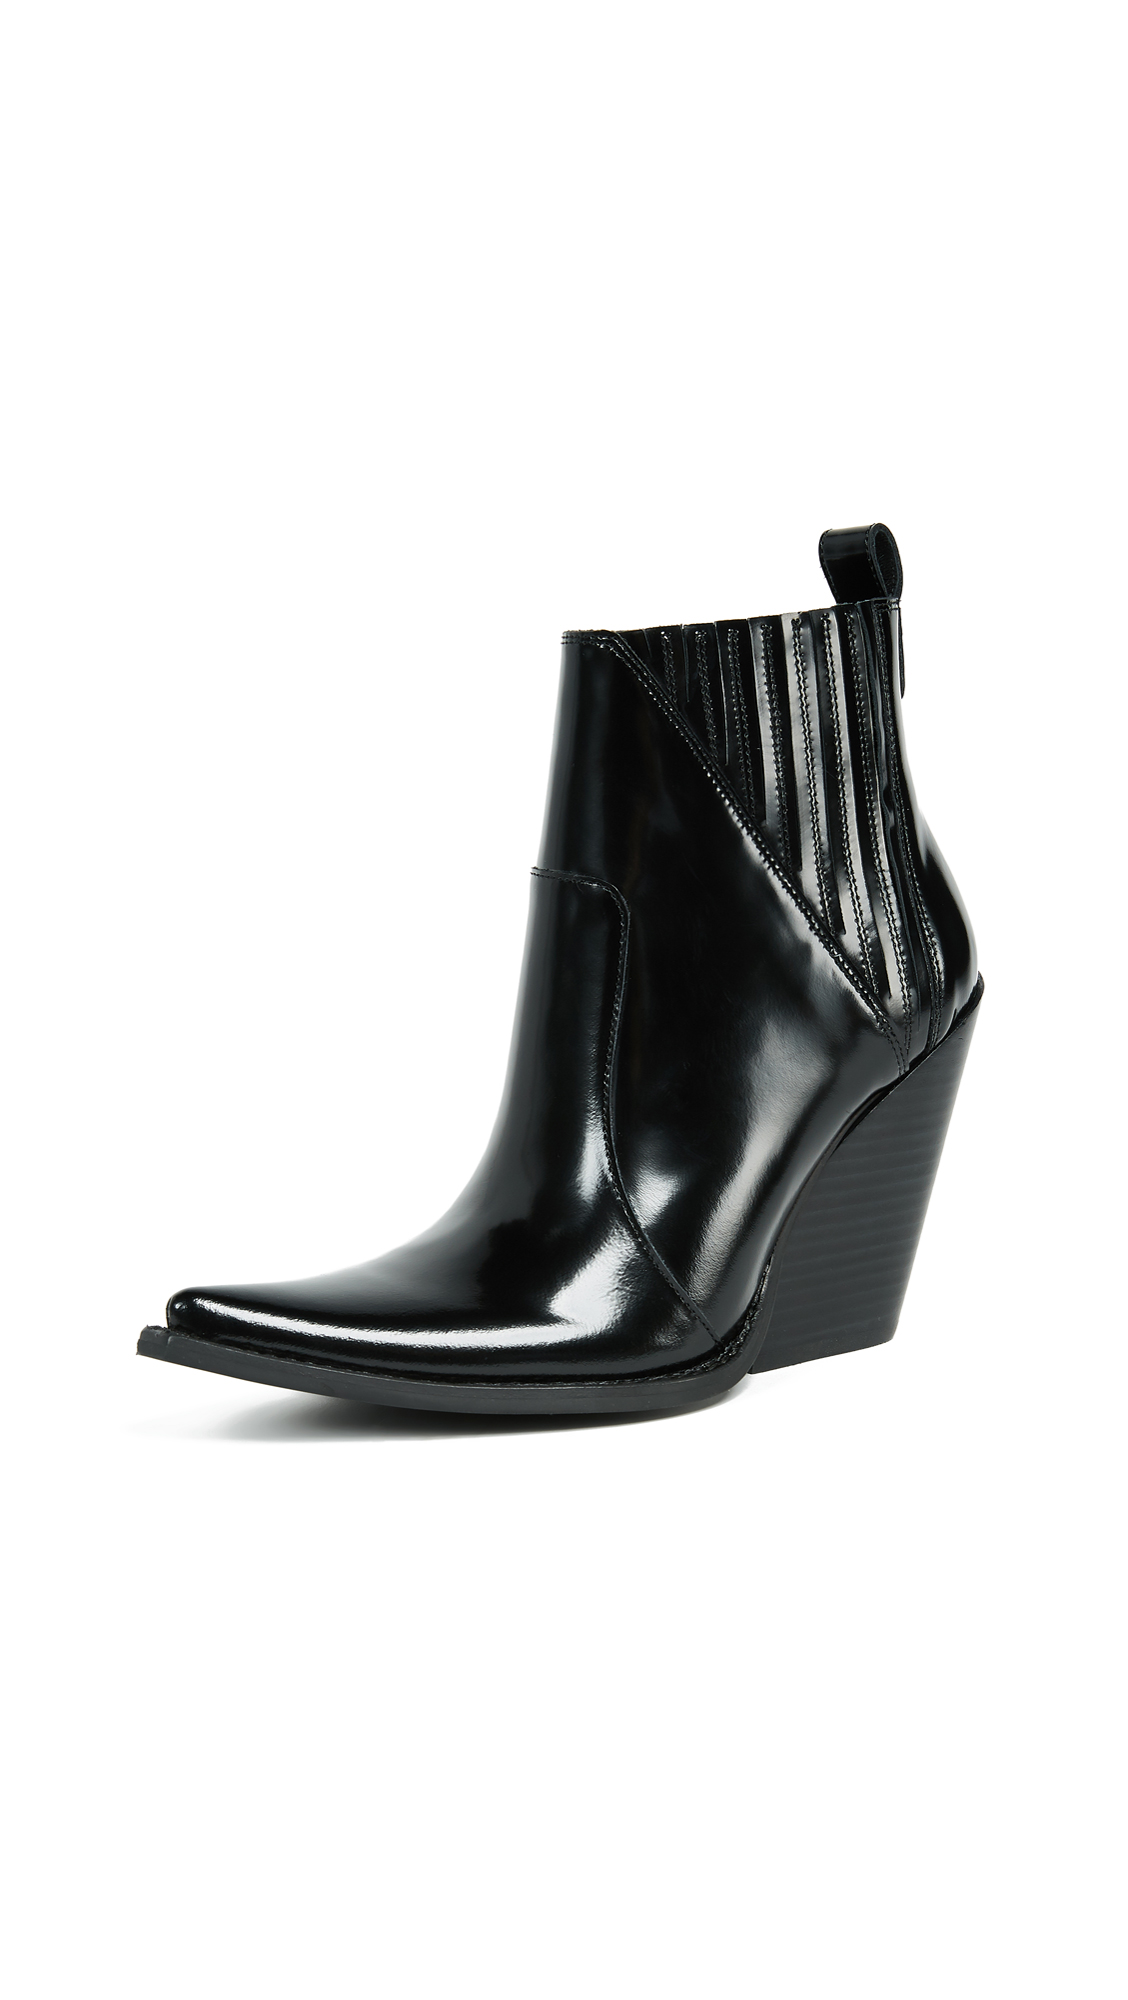 Jeffrey Campbell Homage Point Toe Booties - Black Box